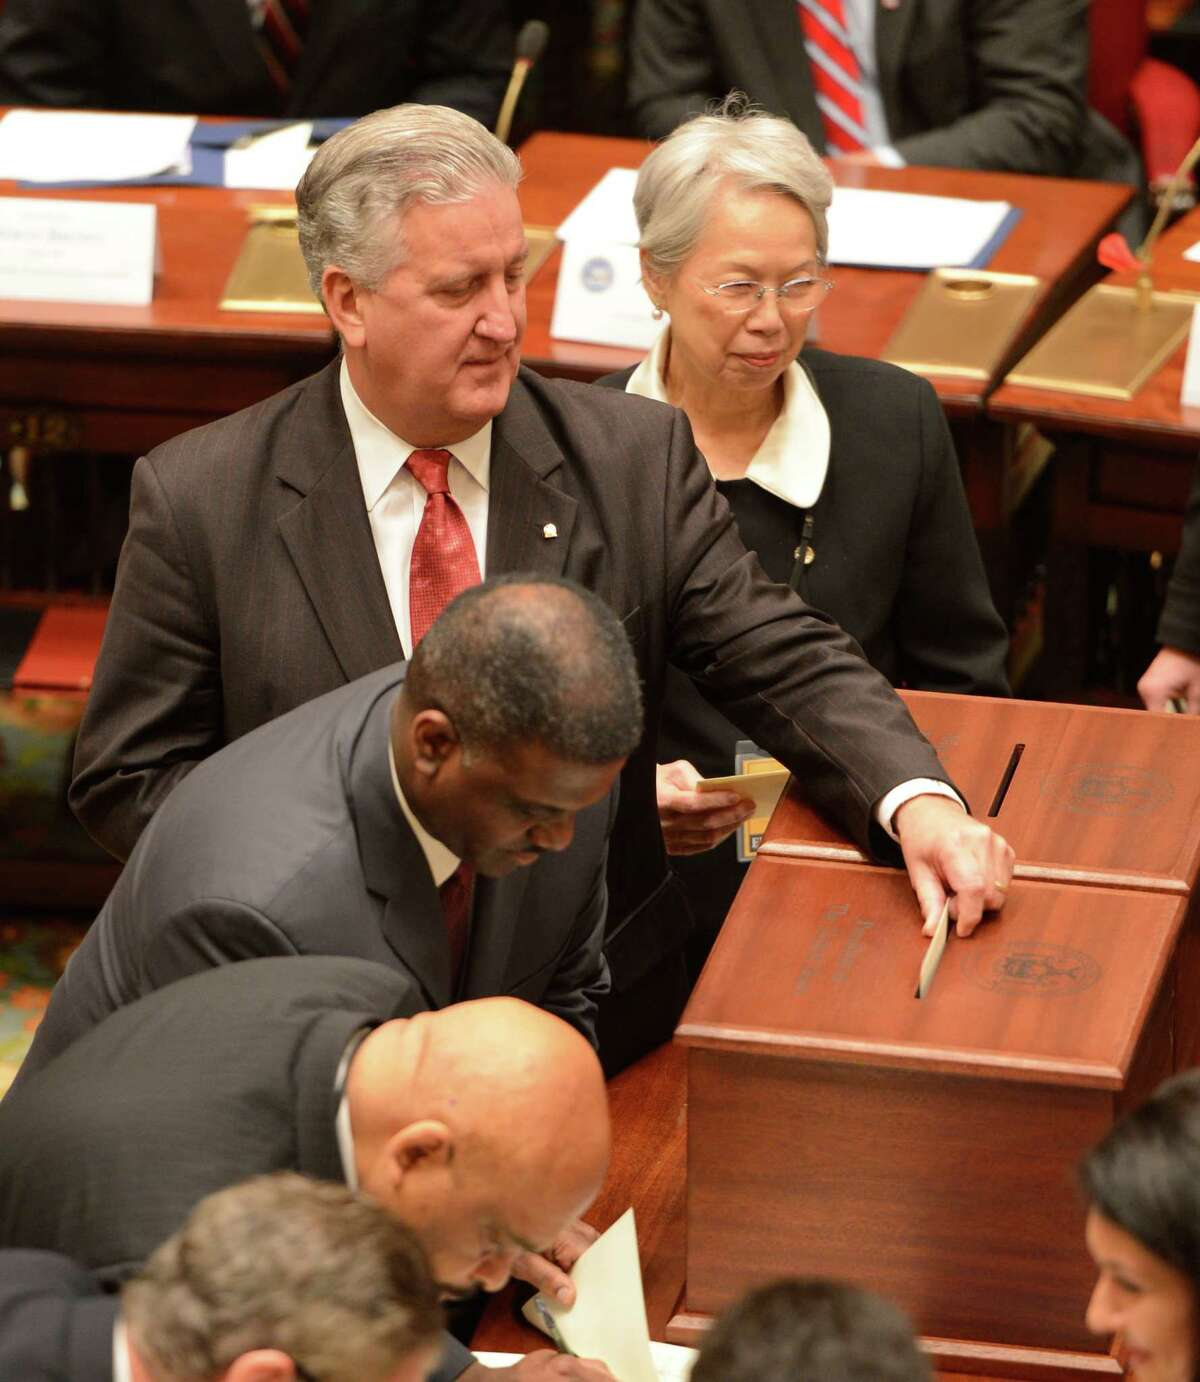 Albany Mayor Jerry Jennings a member of the New York State Electoral College cast his ballot during the 57th meeting of the electoral college which took place in the Senate Chamber of the State Capitol on Dec 17, 2012, in Albany, N.Y. (Skip Dickstein/Times Union archive)